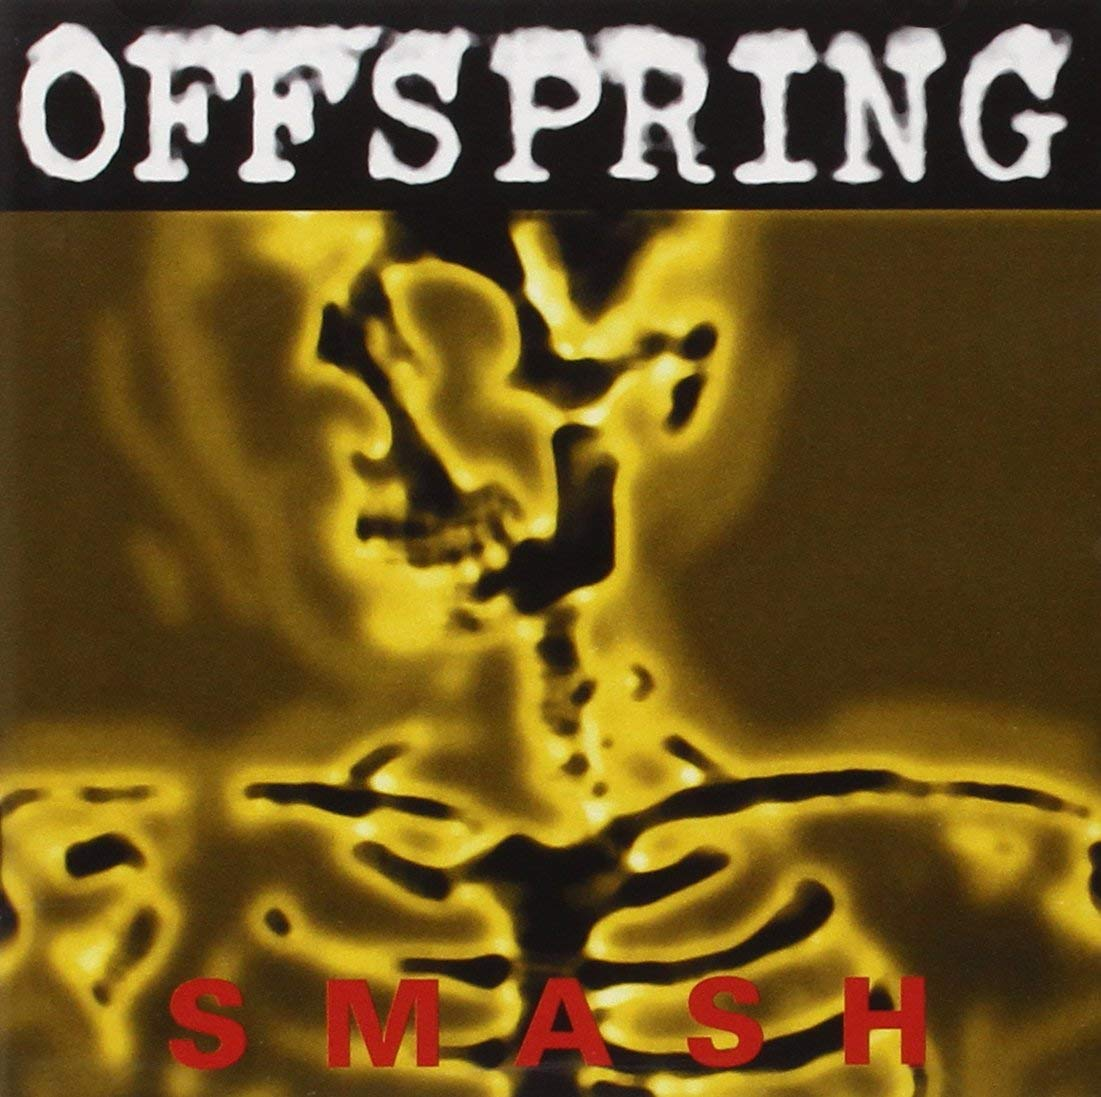 The Offspring - Smash (2016) [FLAC] Download